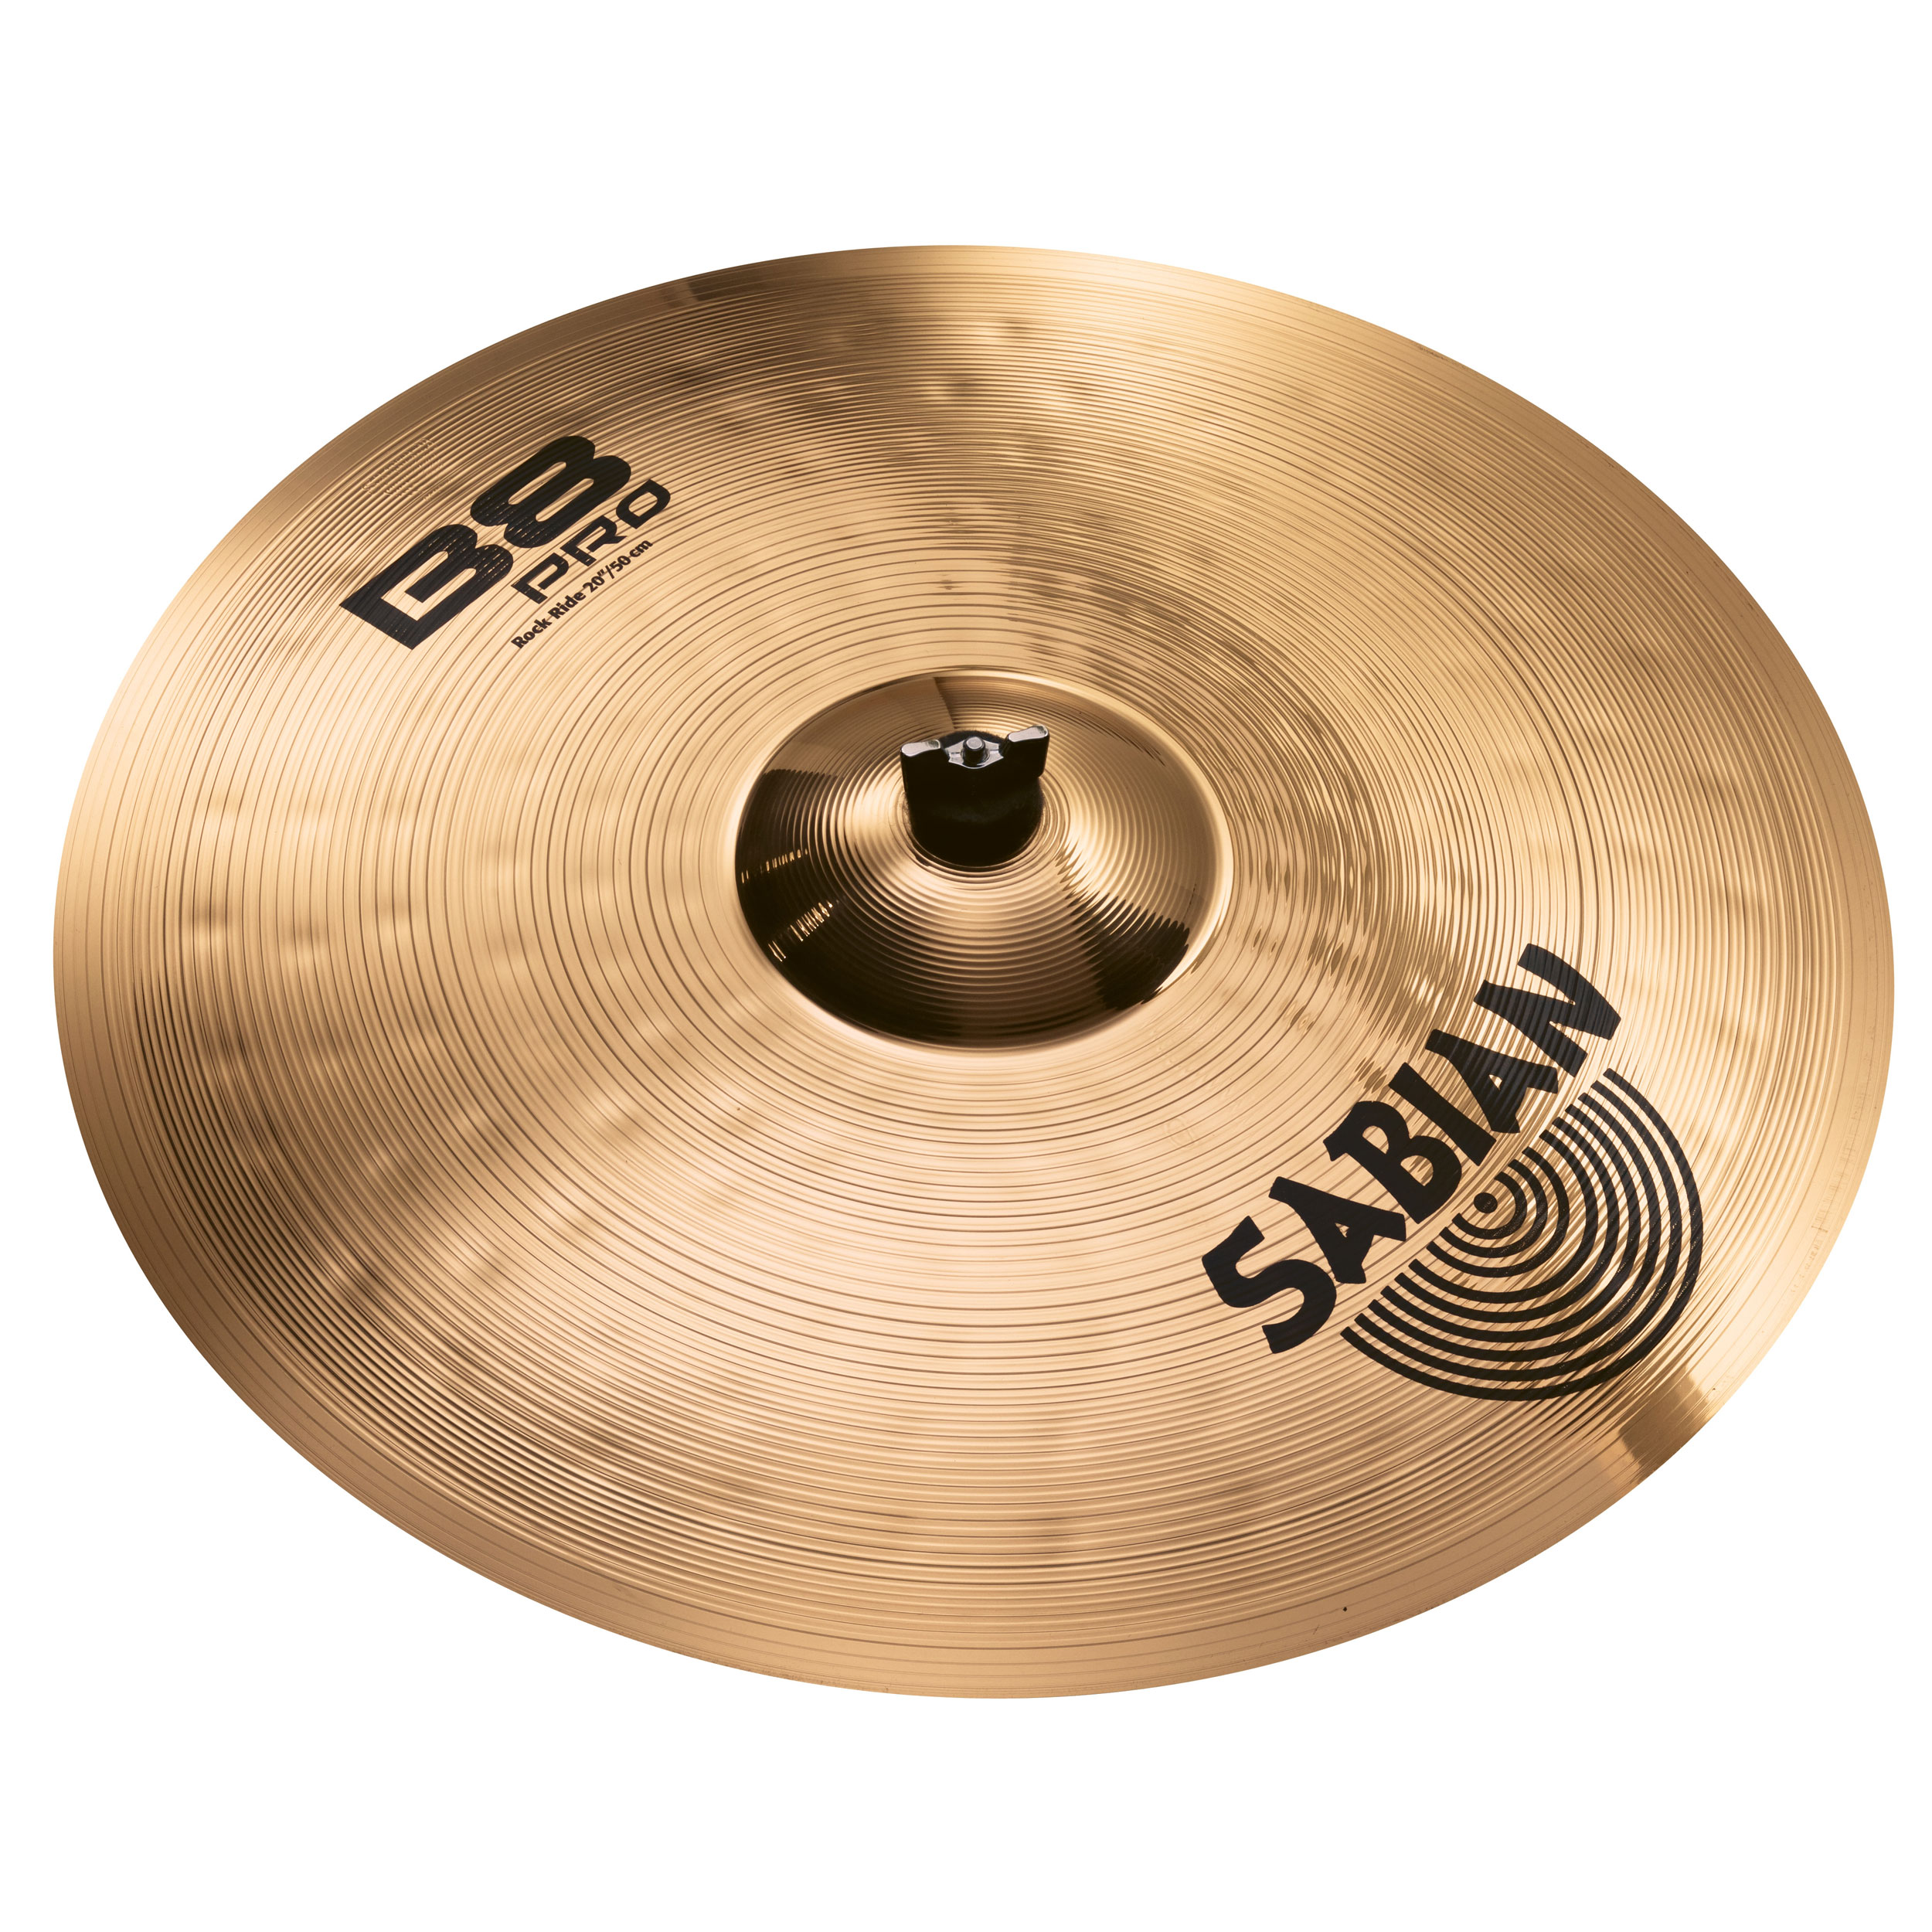 sabian 20 b8 pro power rock ride cymbal with brilliant finish 32014b. Black Bedroom Furniture Sets. Home Design Ideas